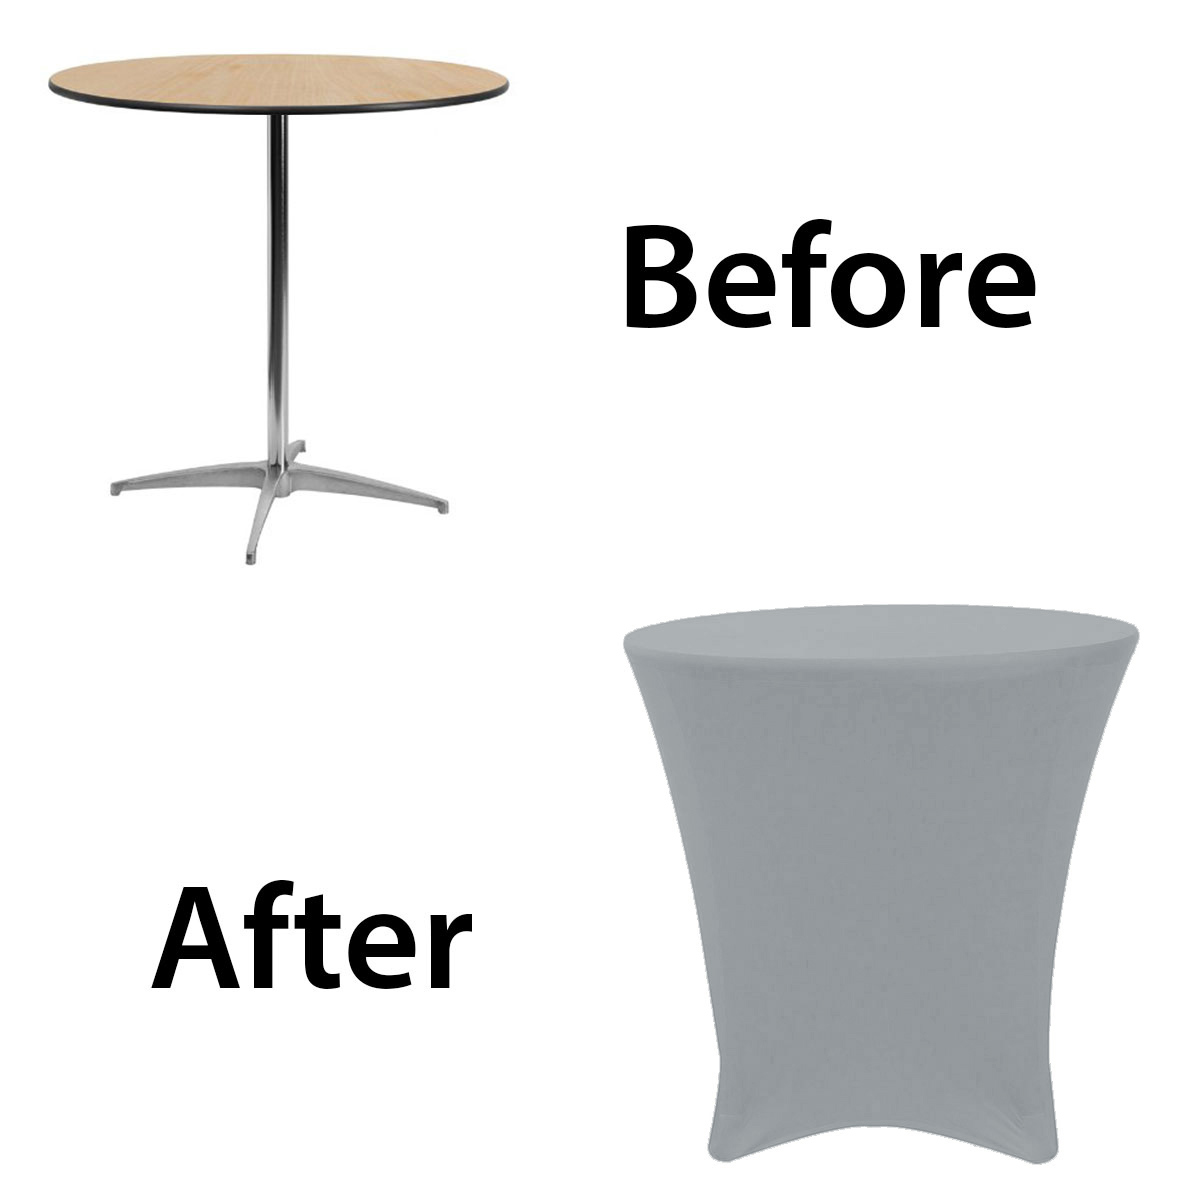 30-30-inch-lowboy-cocktail-spandex-table-covers-Silver-before-after.jpg